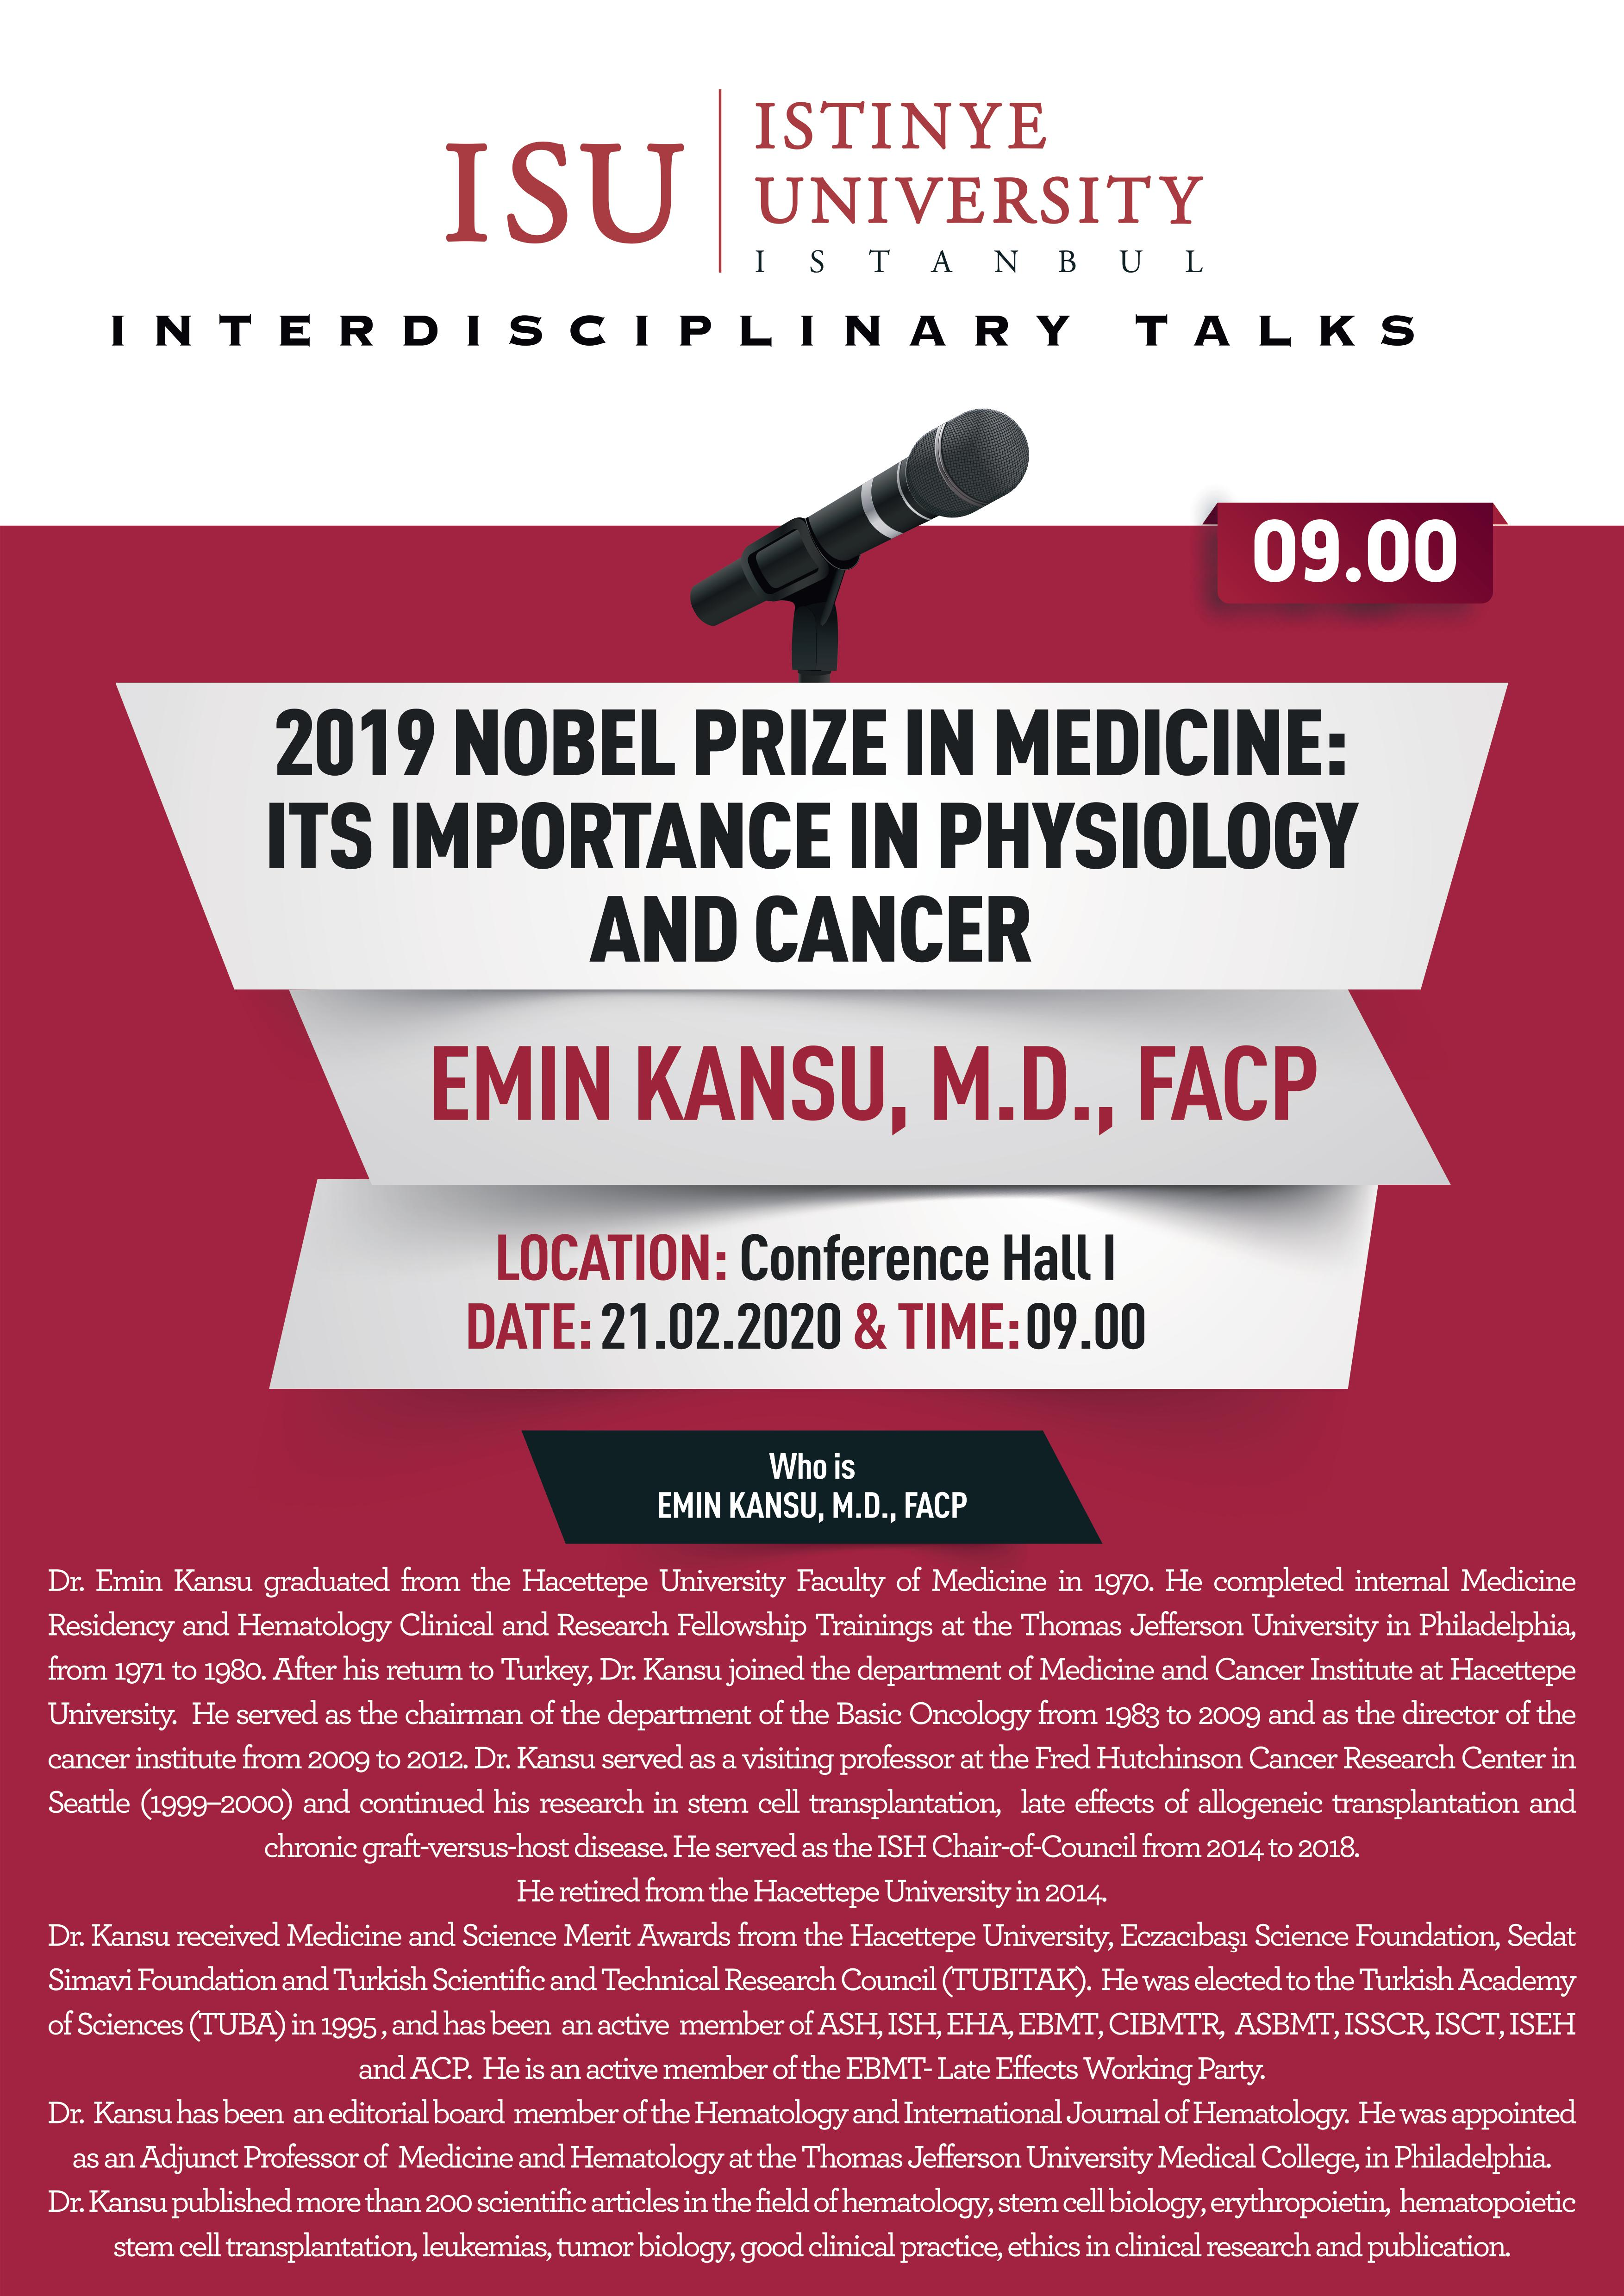 2019 Nobel Prize in Medicine: its Importance in Physiology and Cancer